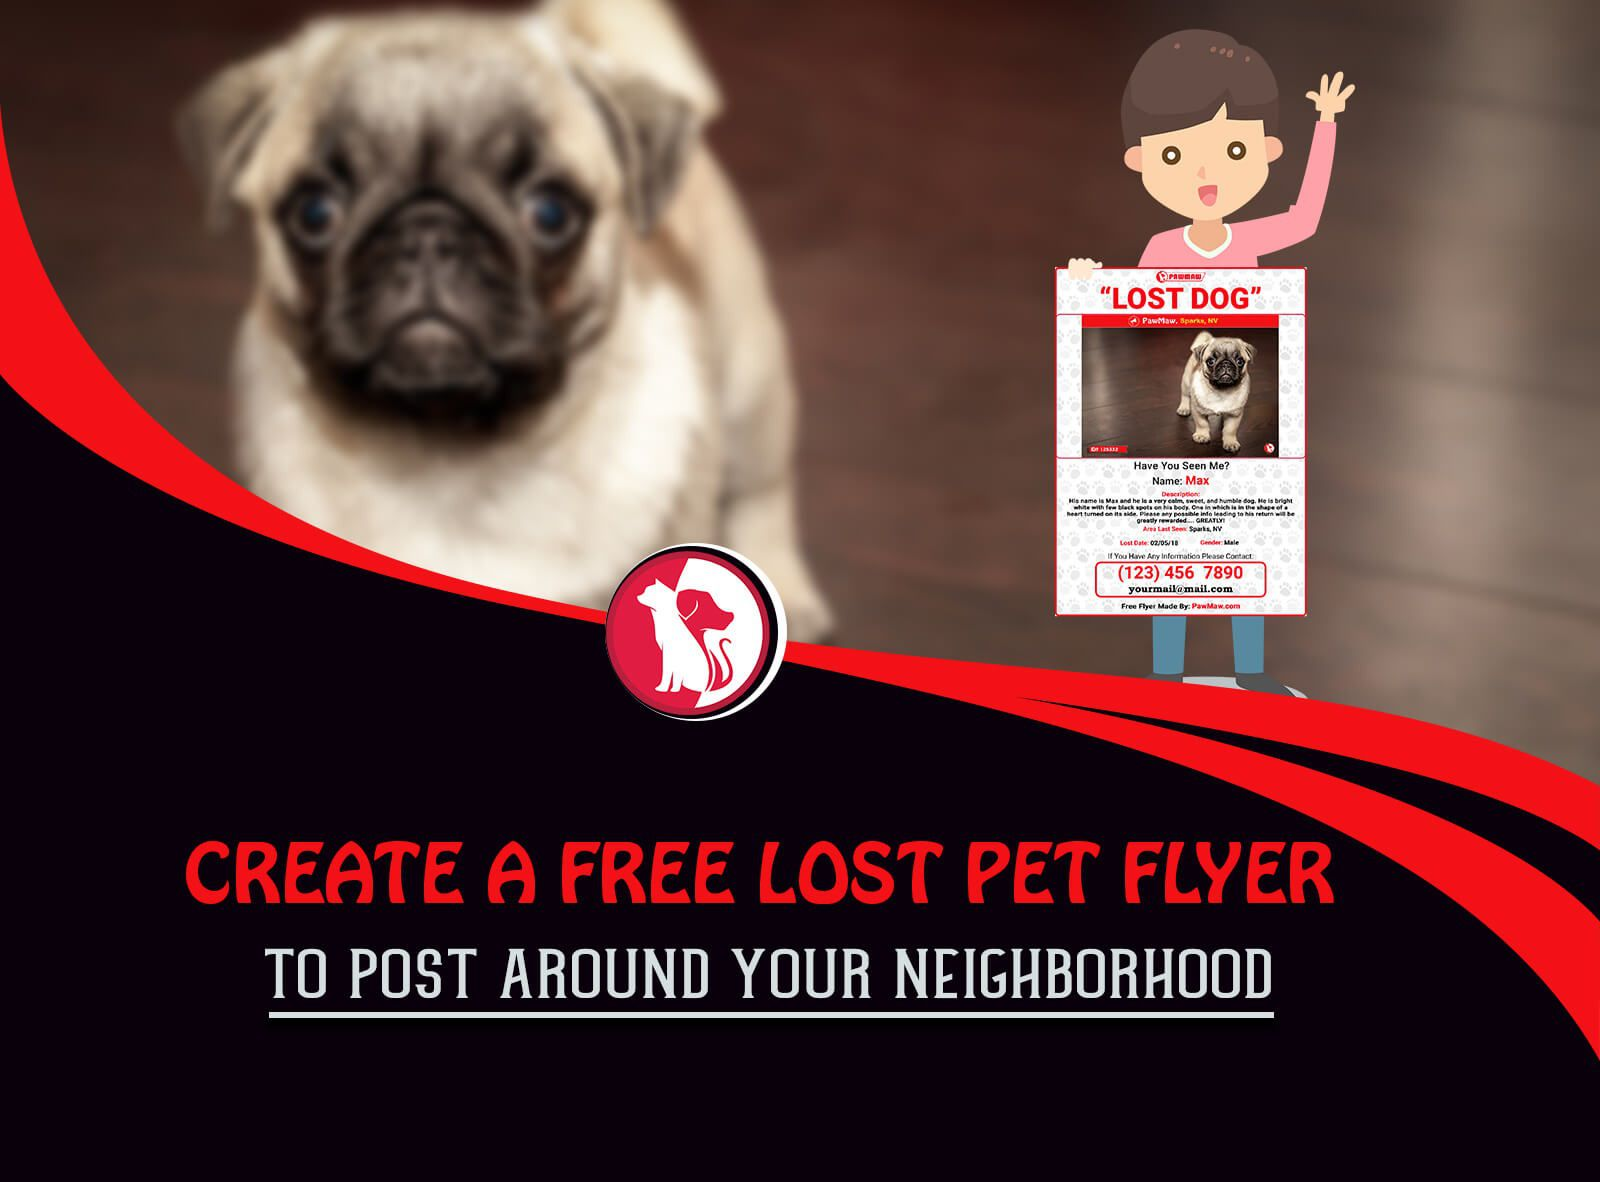 002 Remarkable Lost Dog Flyer Template Concept  Printable Free Missing PetFull